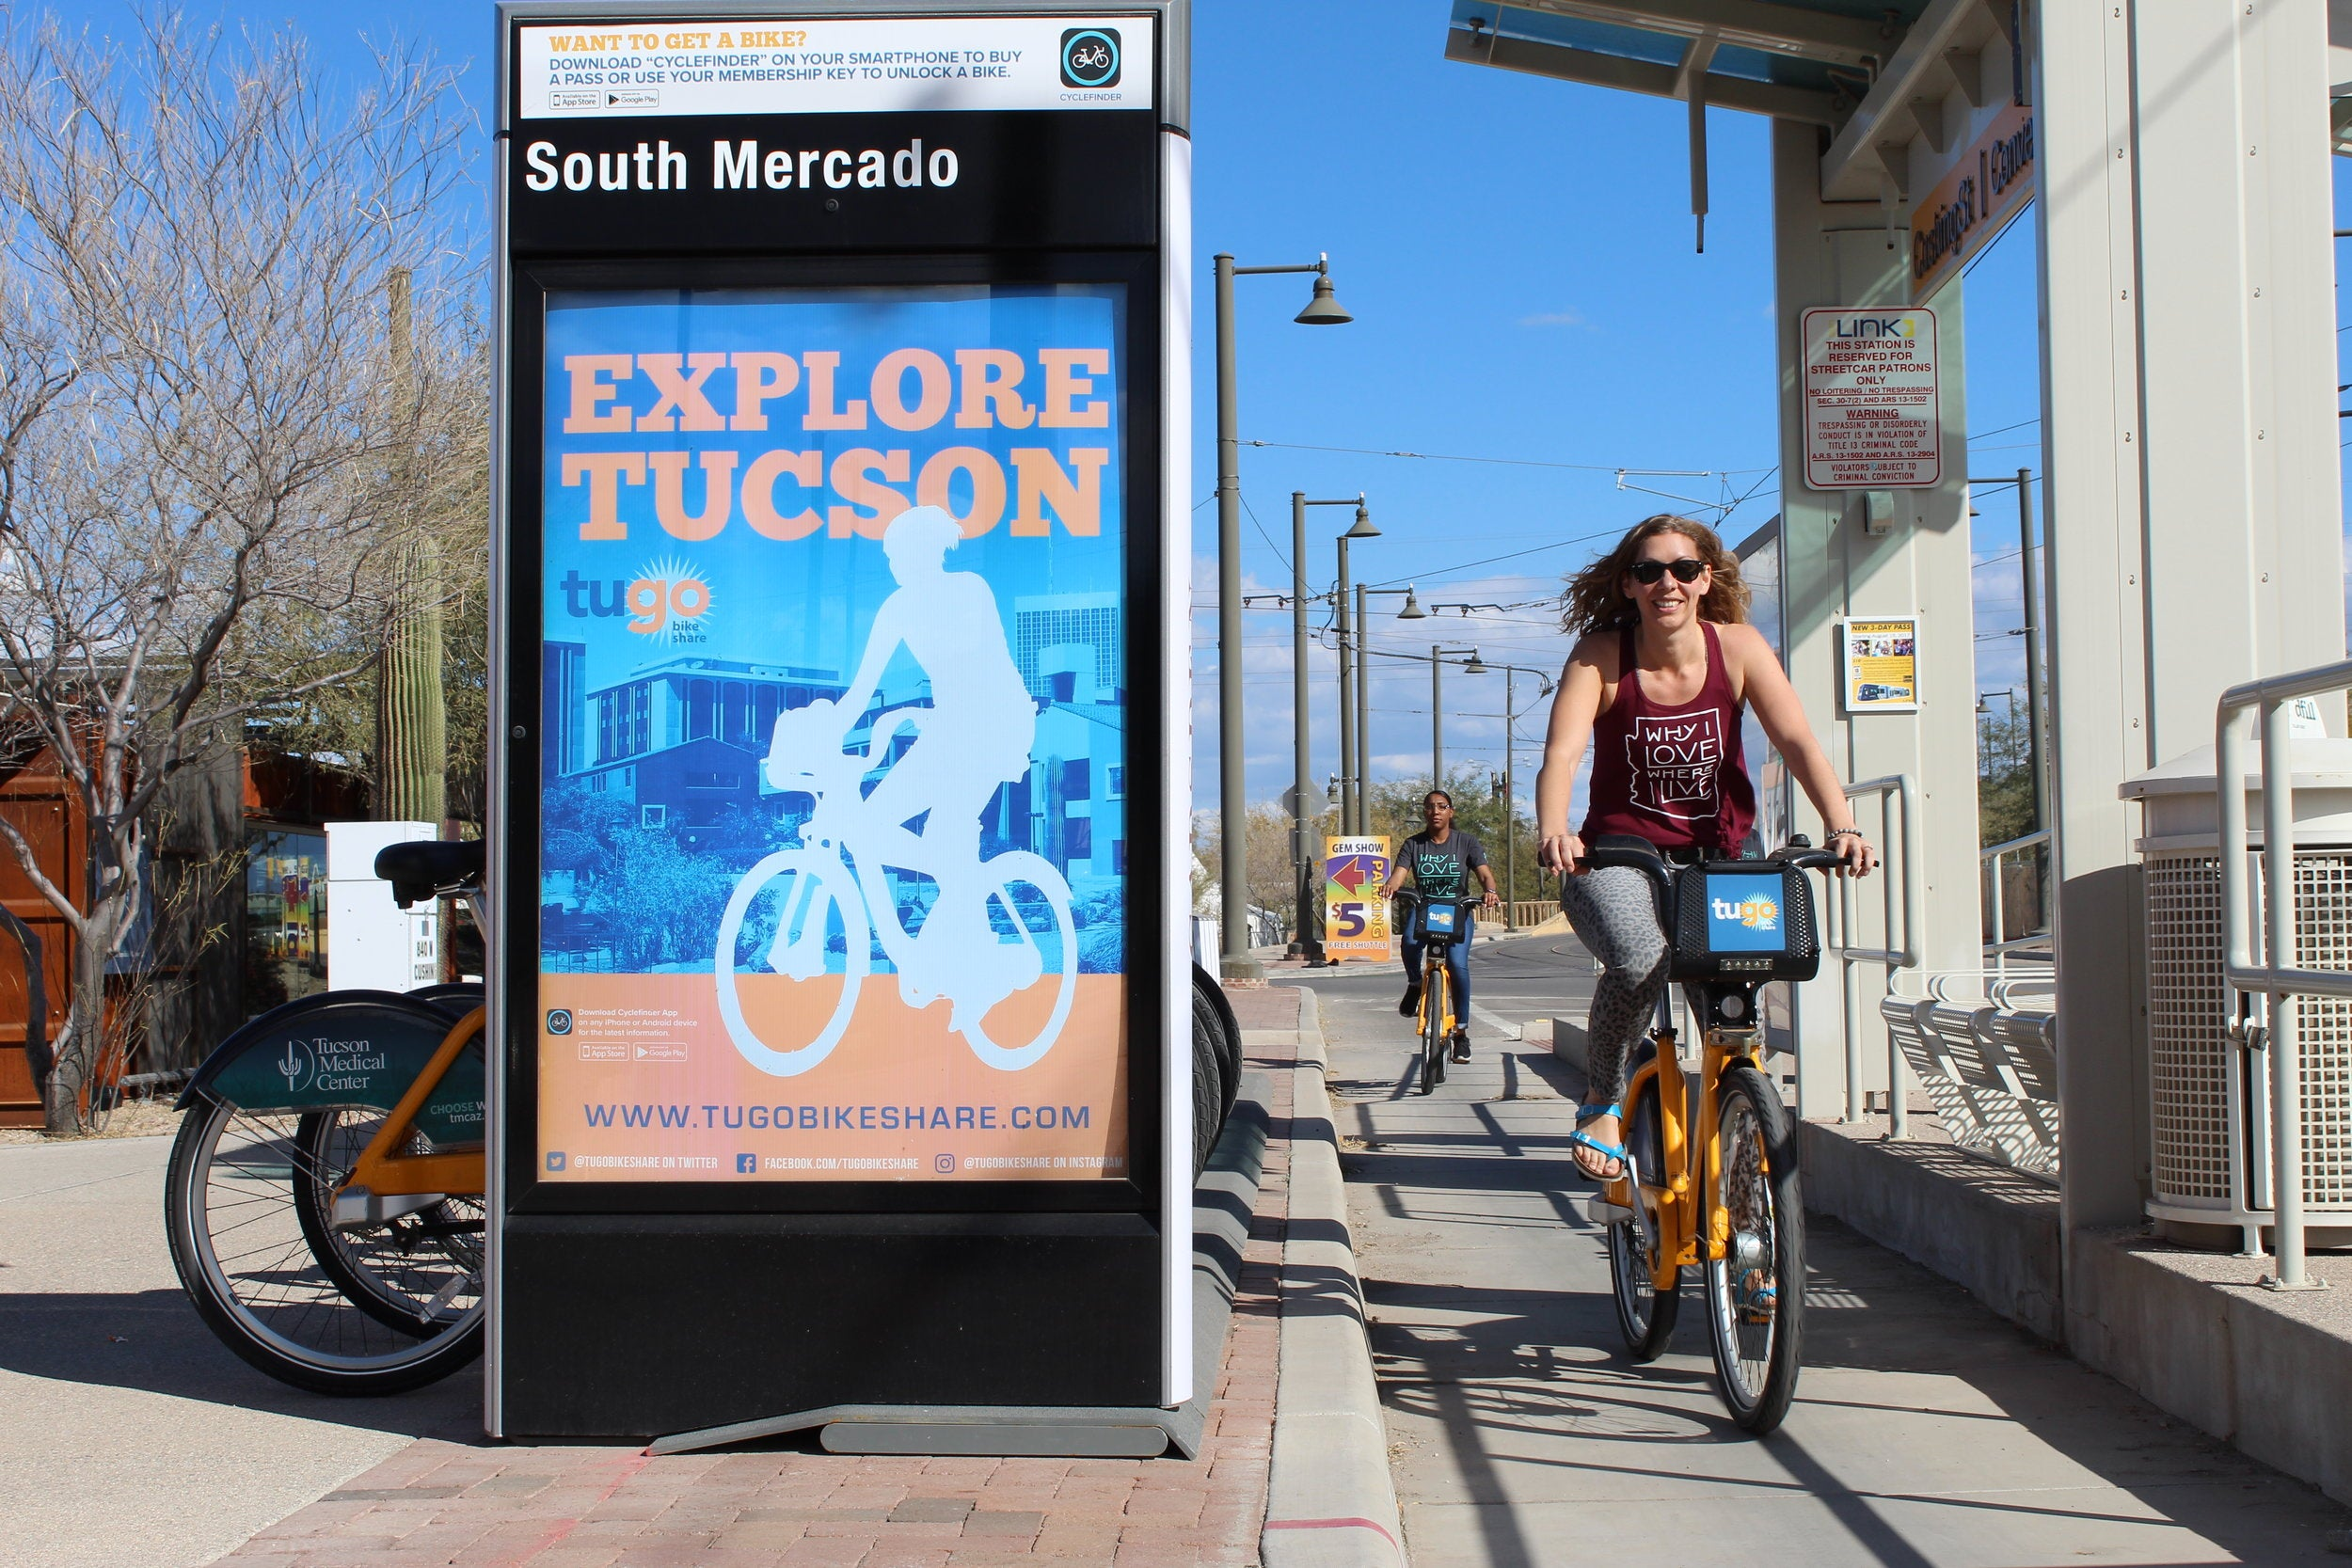 Tugo Bike Share: Imagining a Better City Through the Lens of Two Wheels